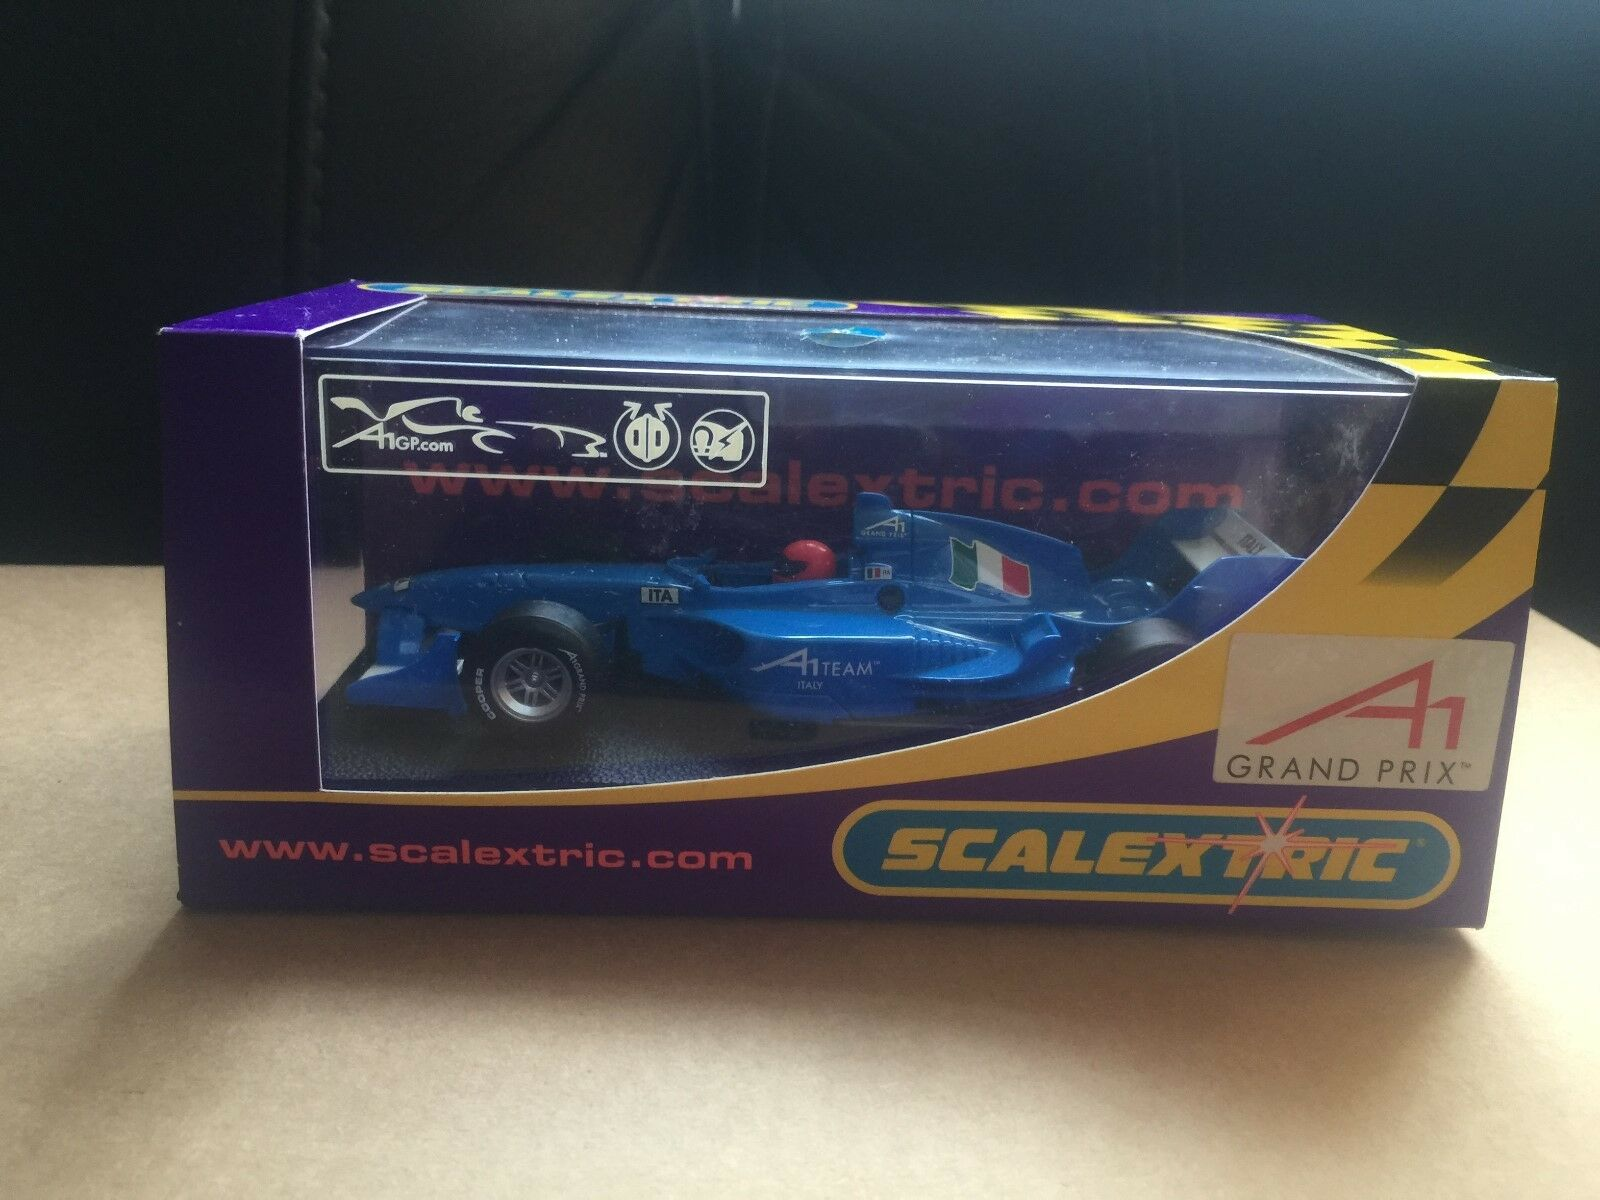 SCALEXTRIC A1 GP SERIES TEAM ITALY REF C2745 RARE